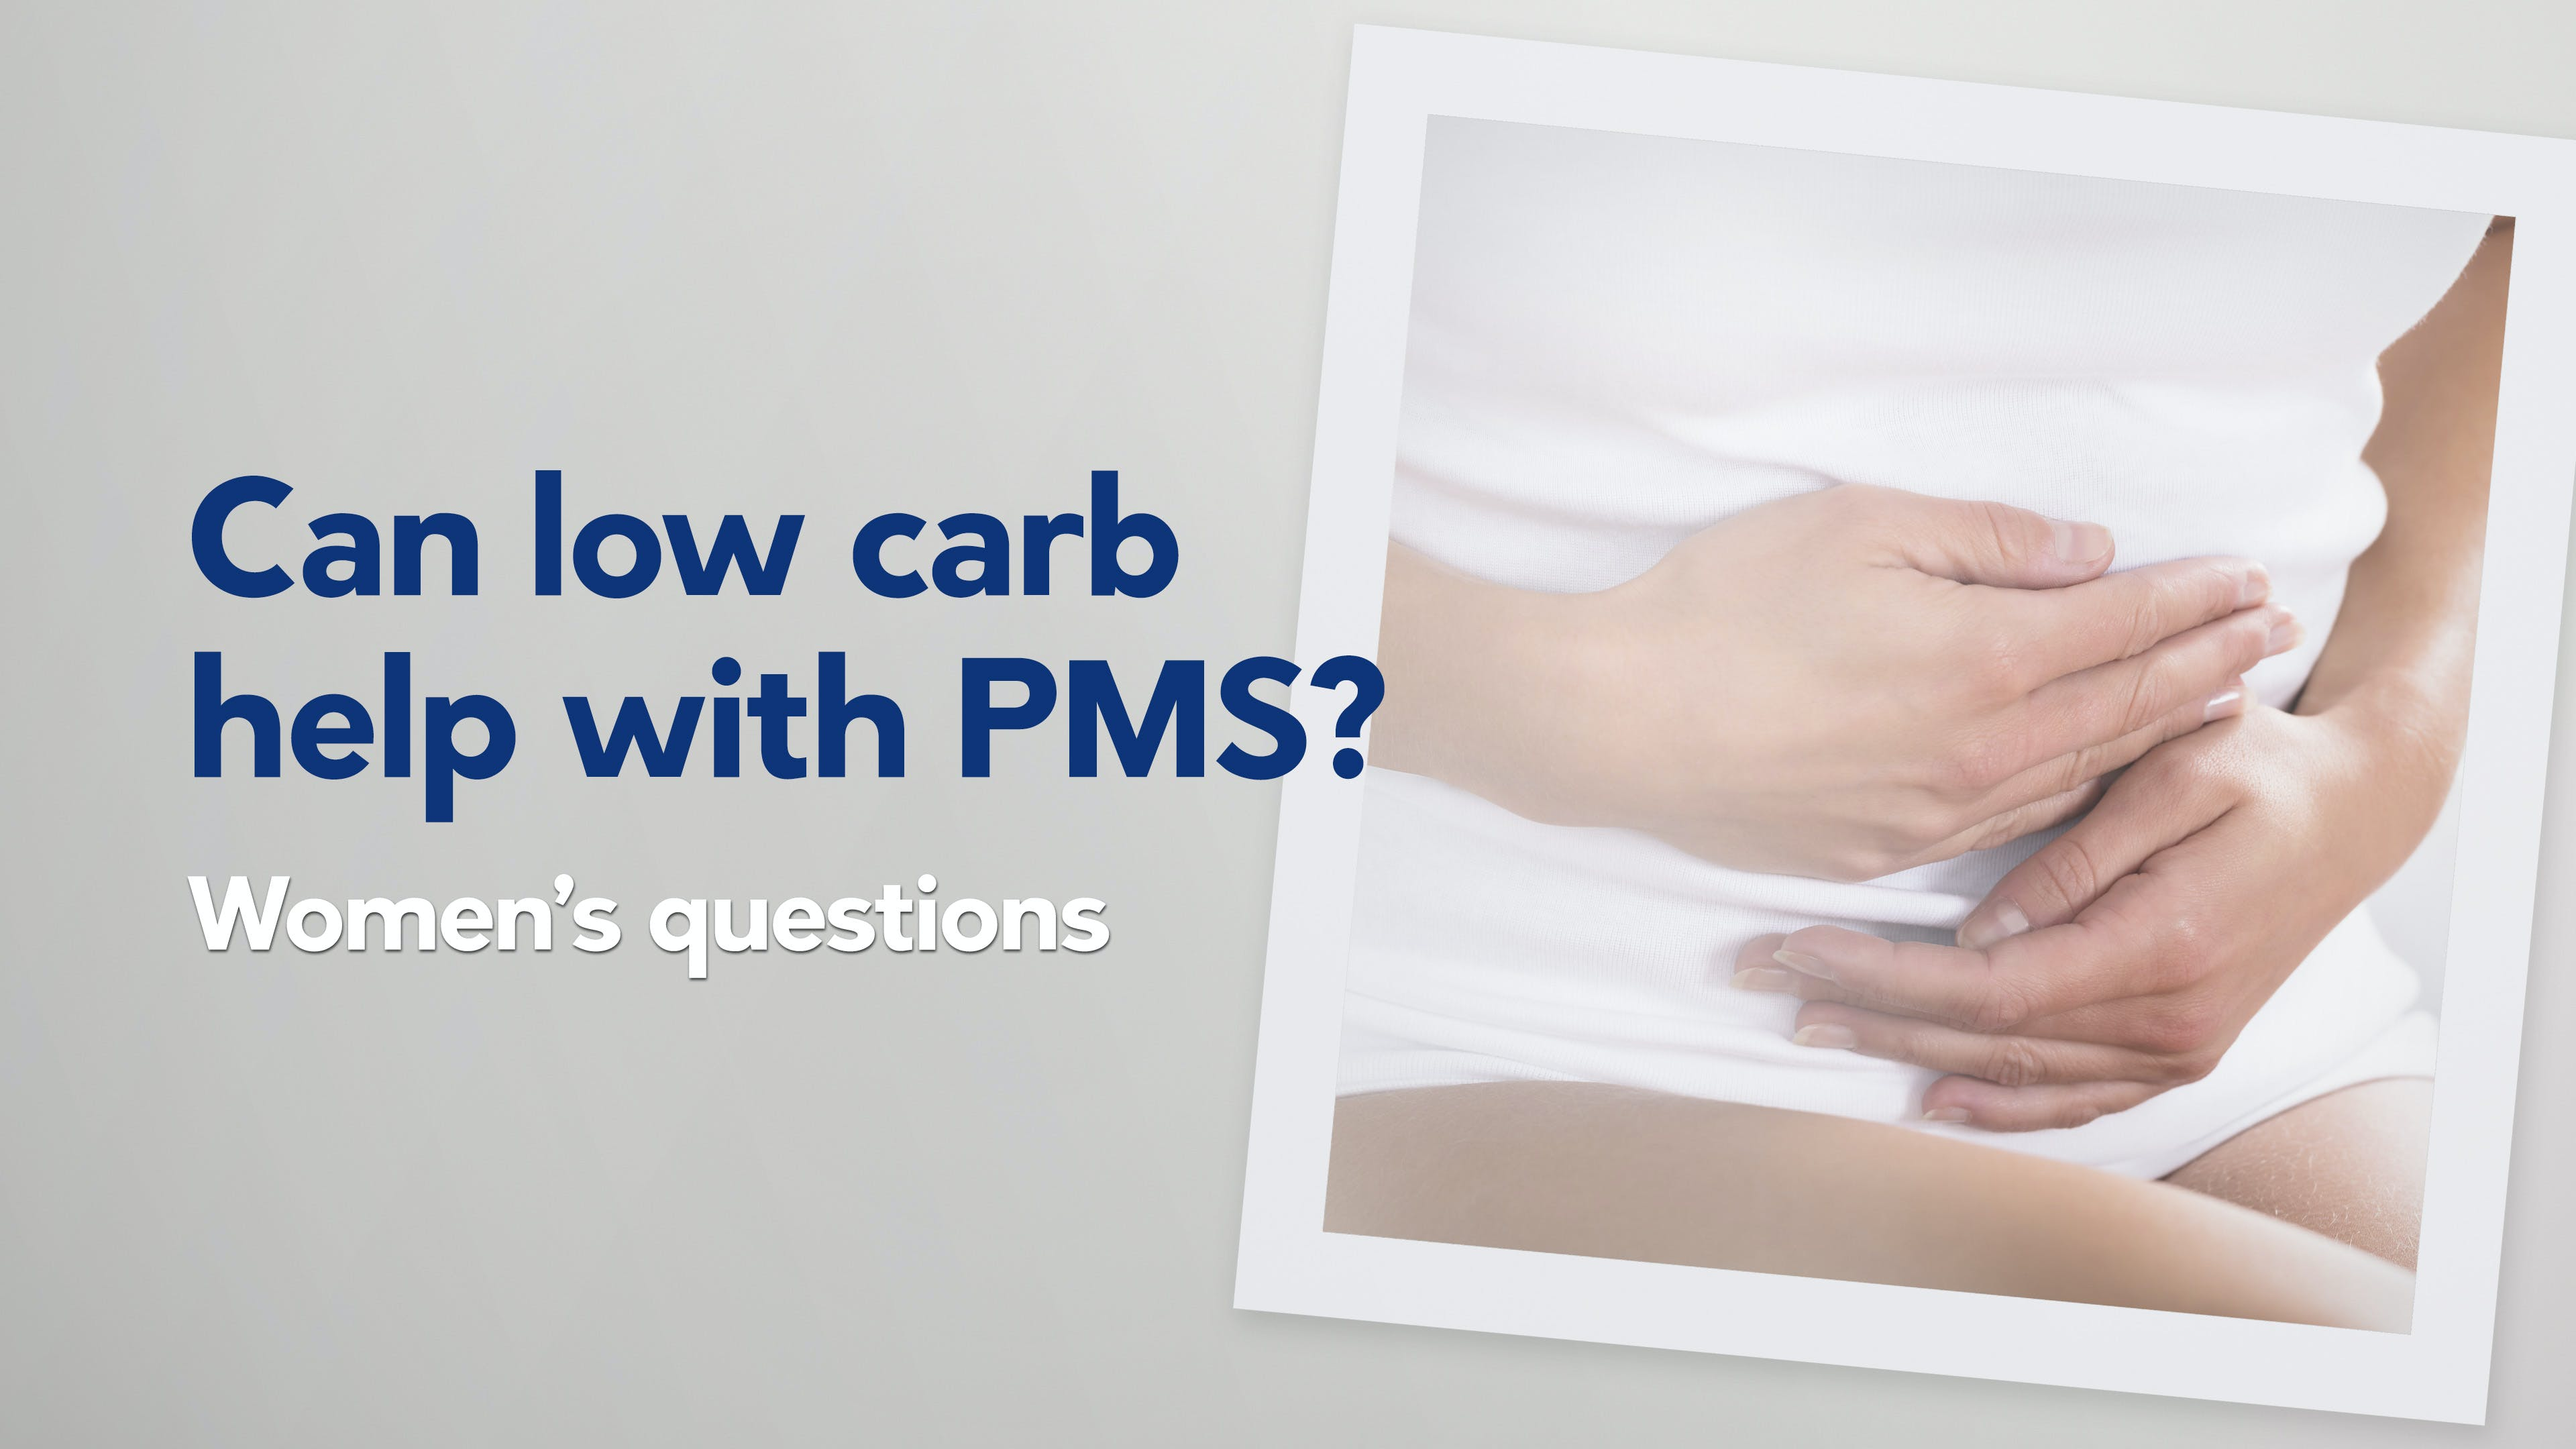 Can low carb and keto help with PMS?